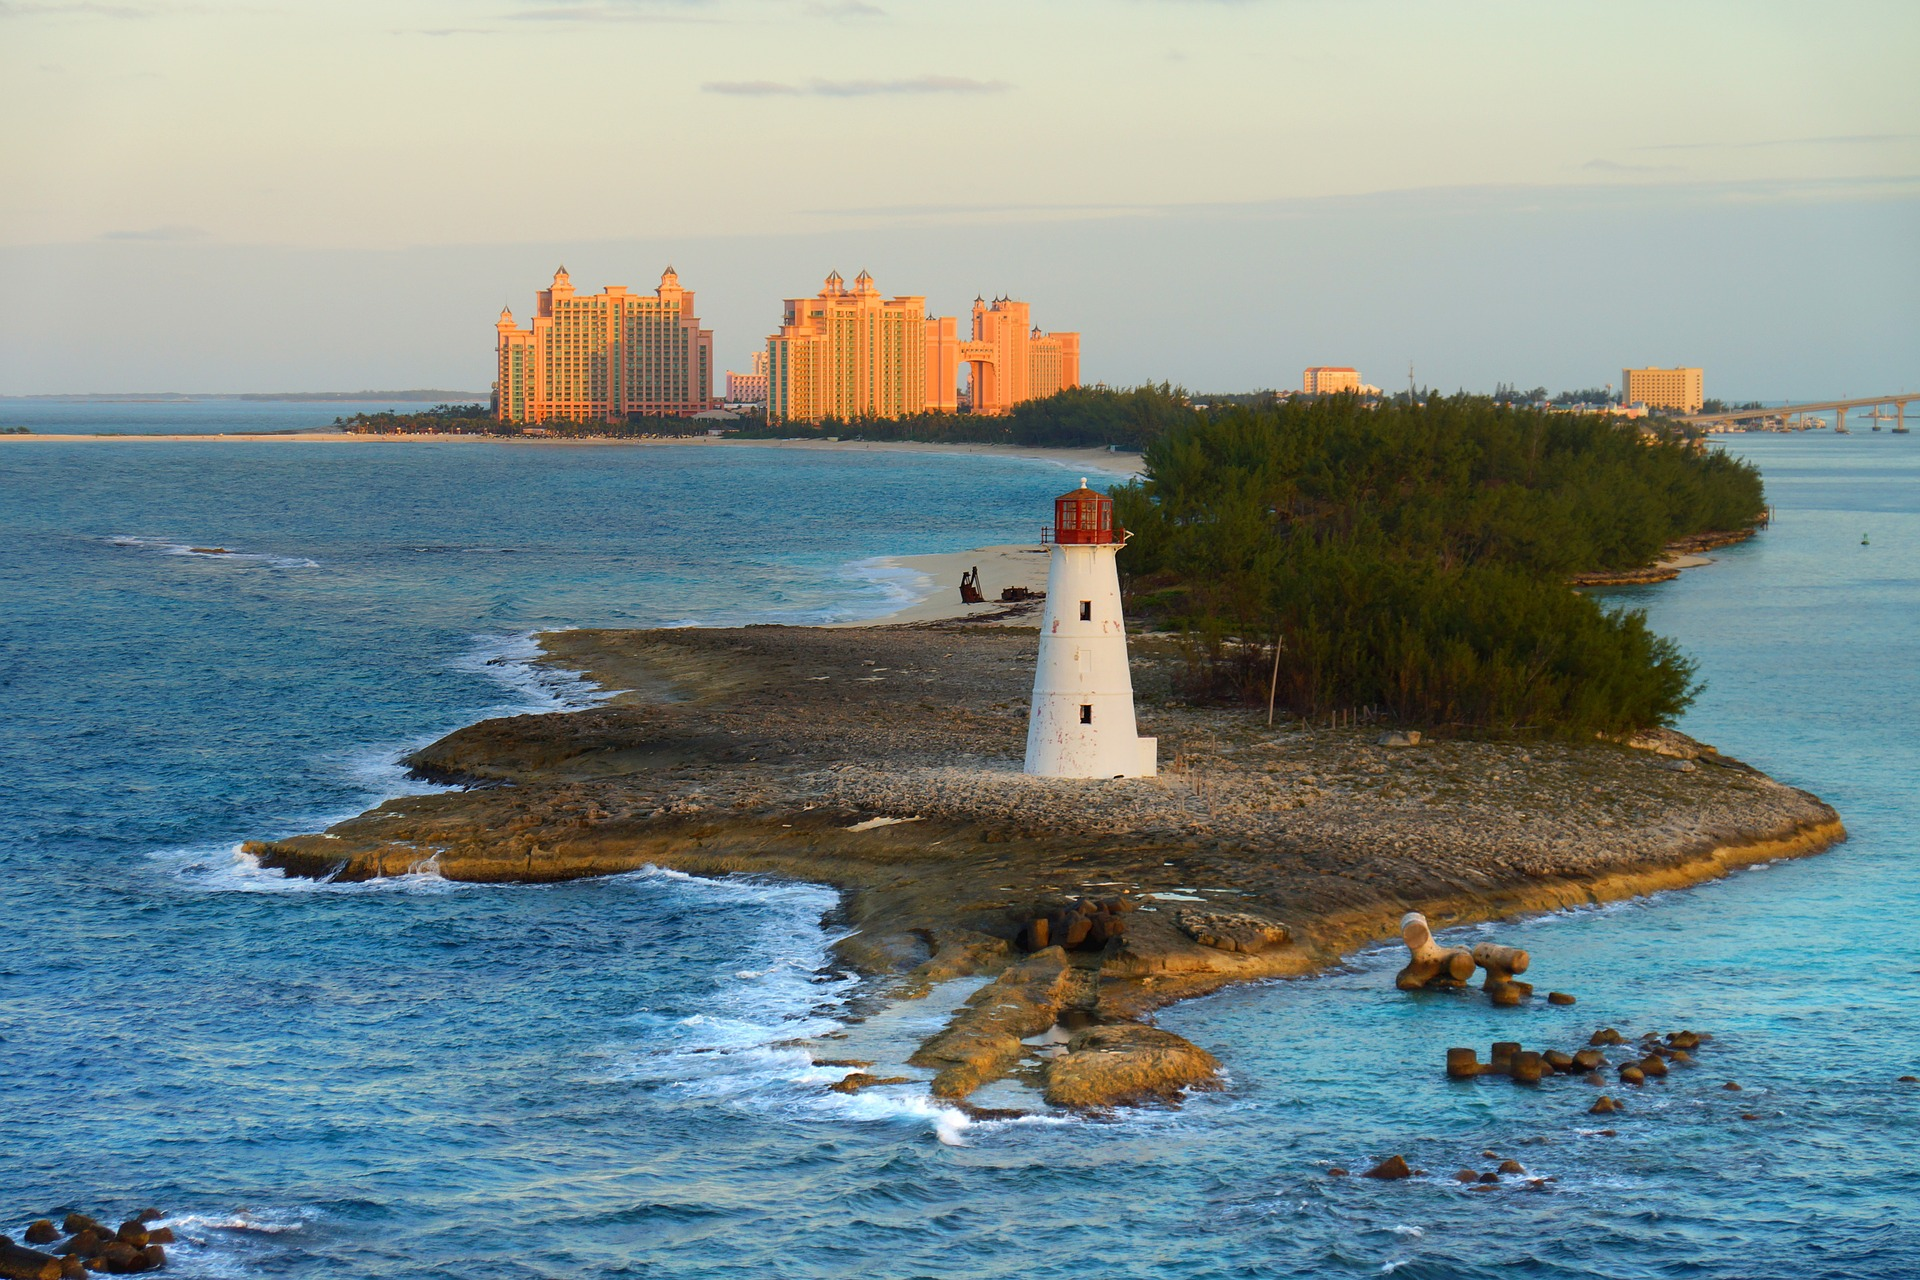 Lighthouse with Atlantis in the background taken in the Bahamas